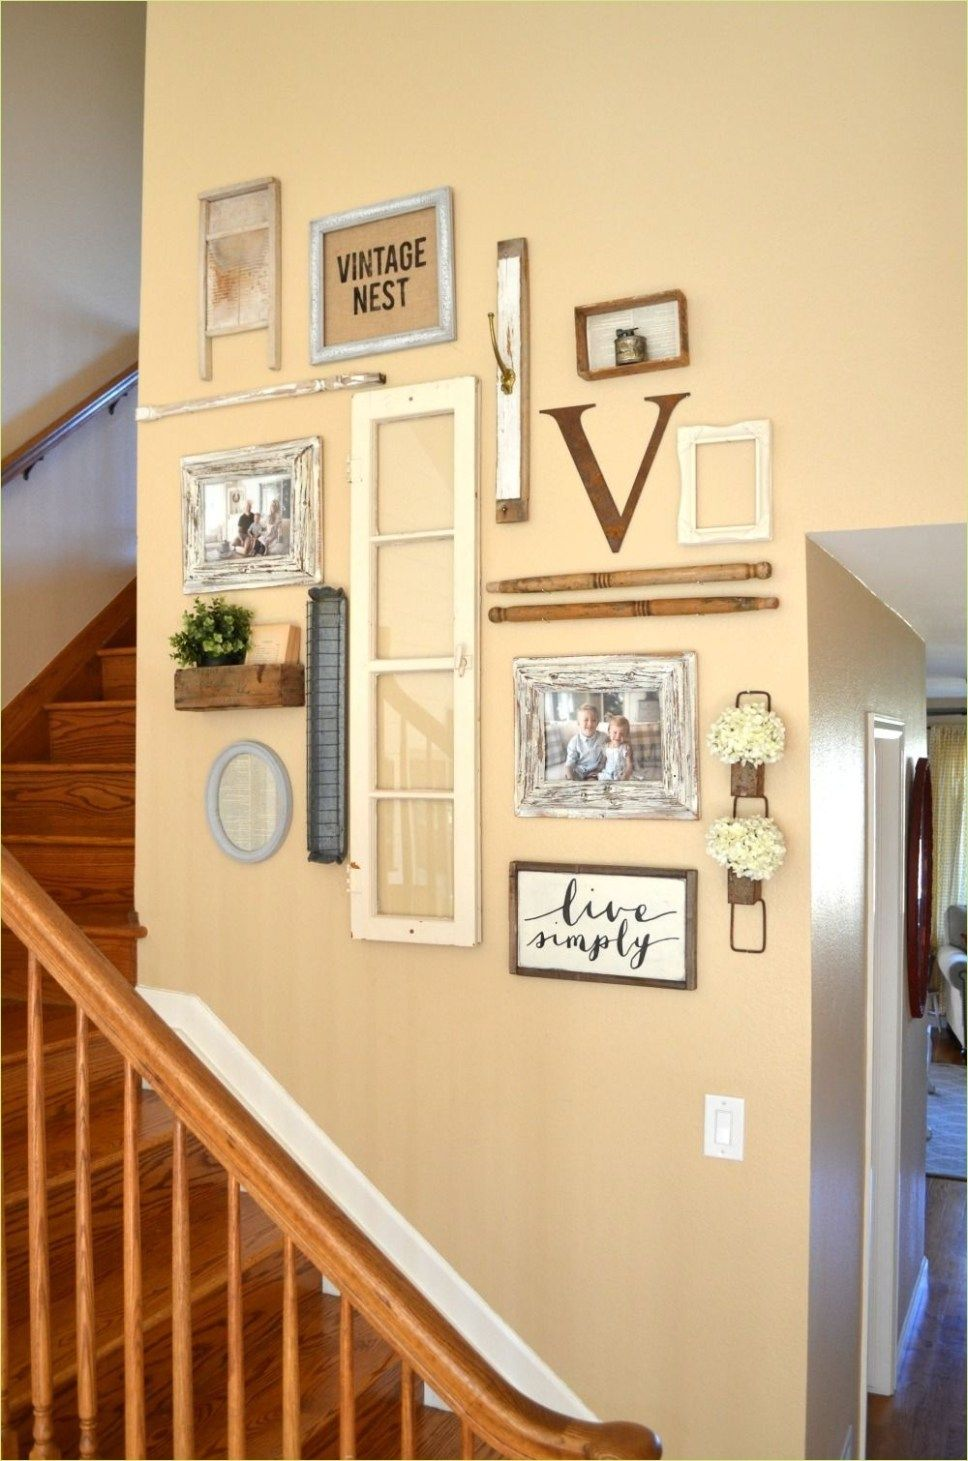 37 Clever Organize Farmhouse Wall Grouping Ideas | Wall groupings ...